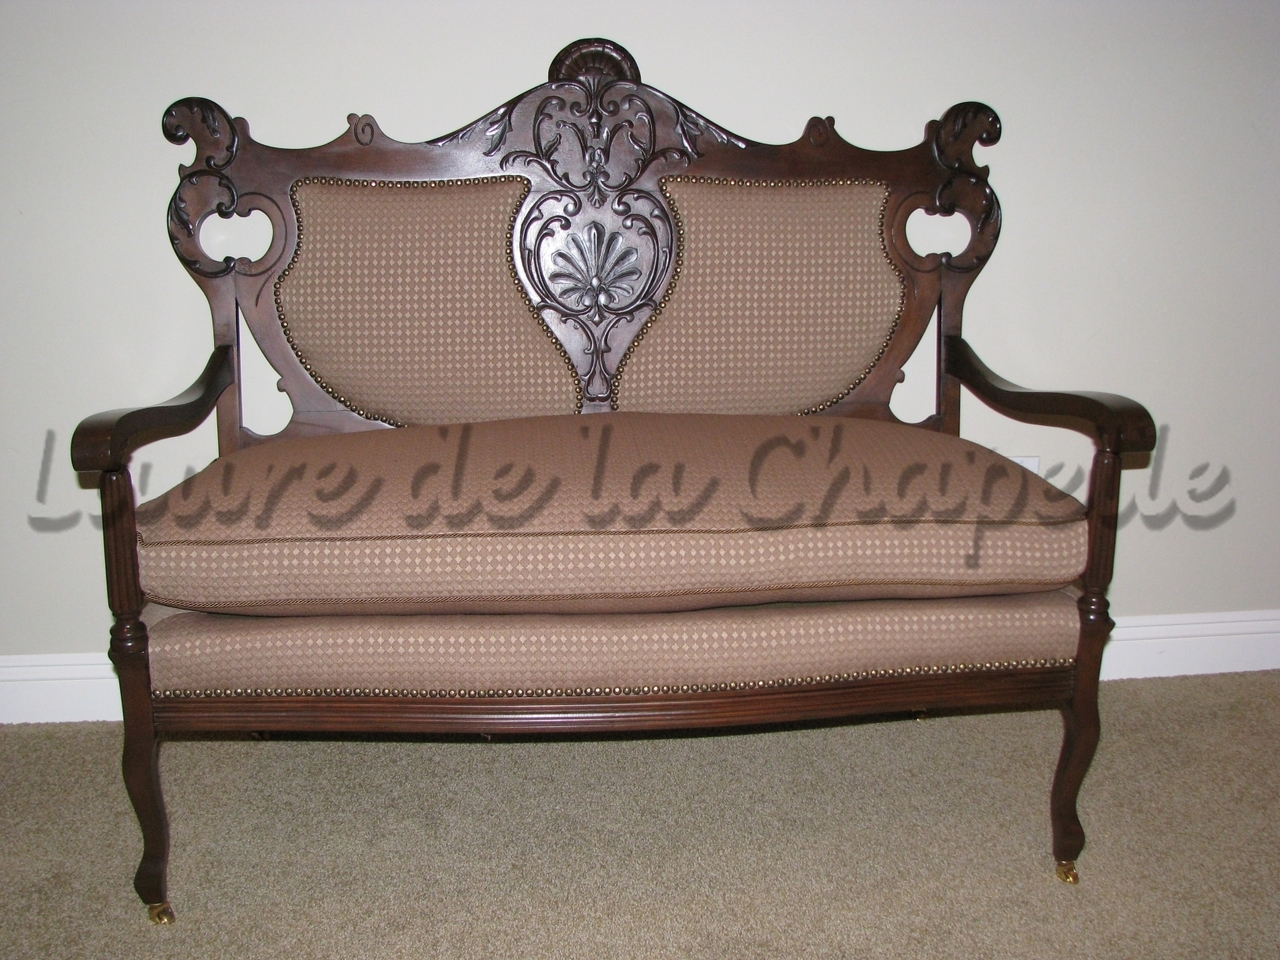 Antique Furniture Restoration San Diego - Antique Furniture Restoration San Diego Upholstery & Restoration